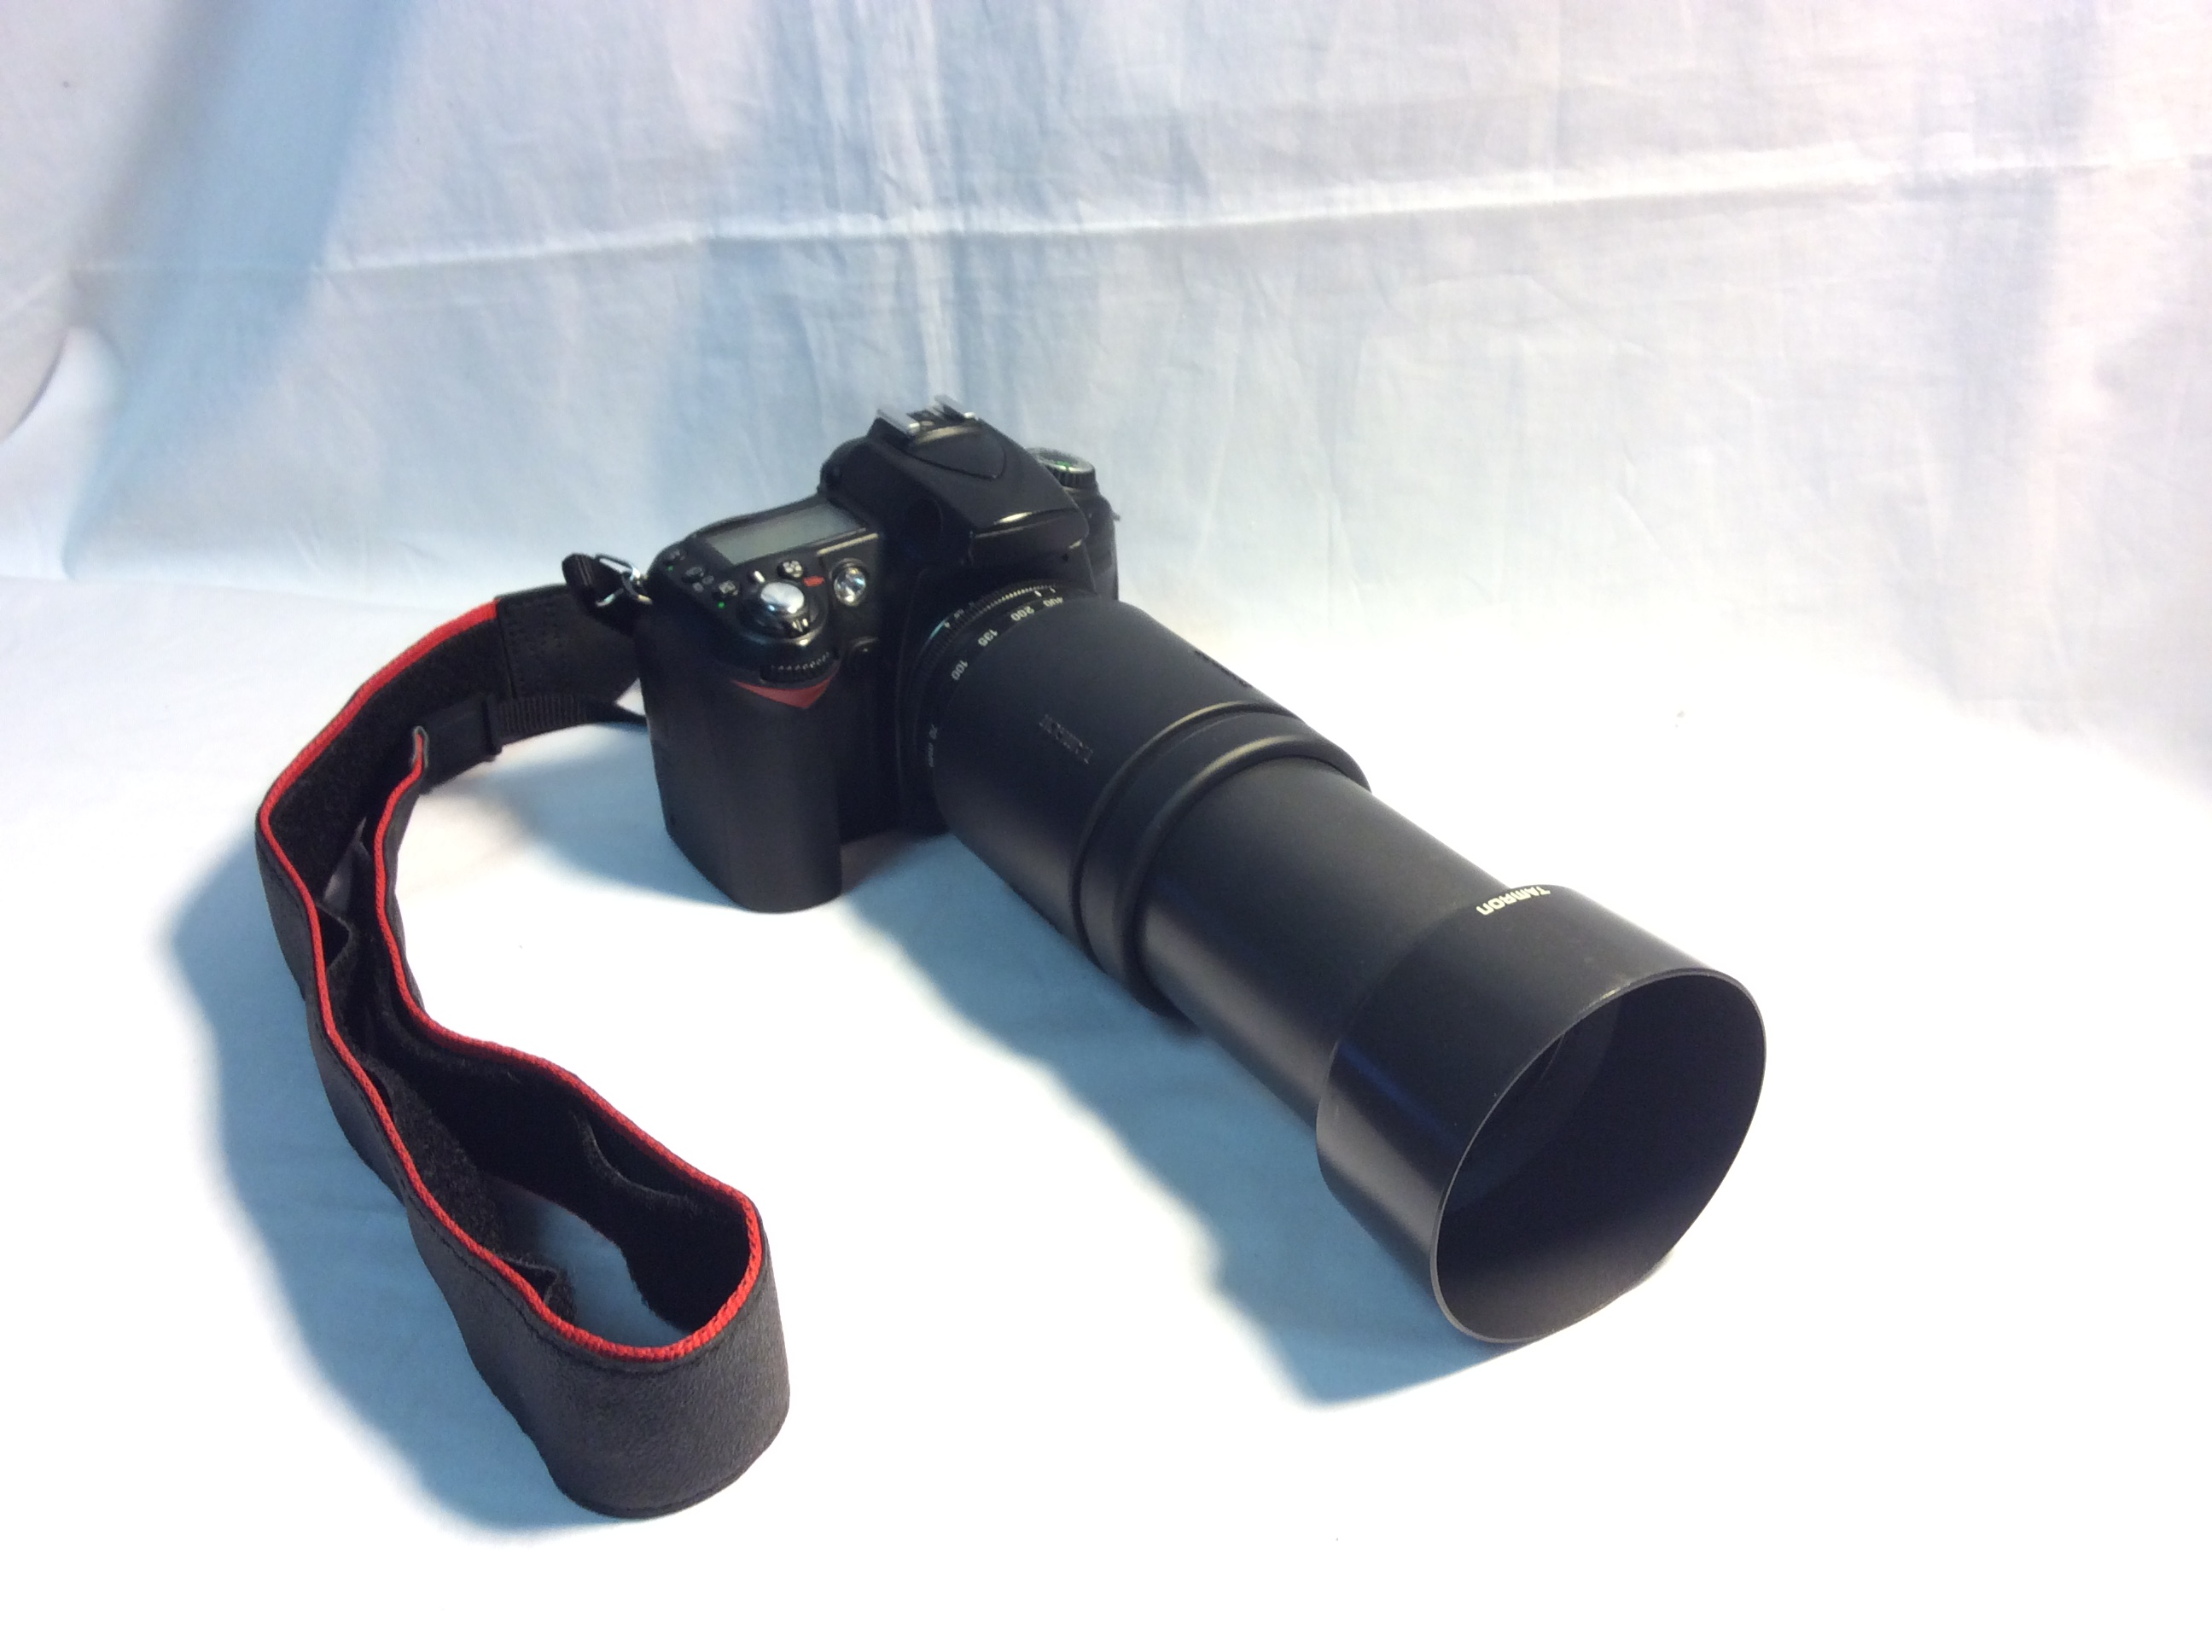 RCP CAM1: Nikon D90 with Tamron Zoom